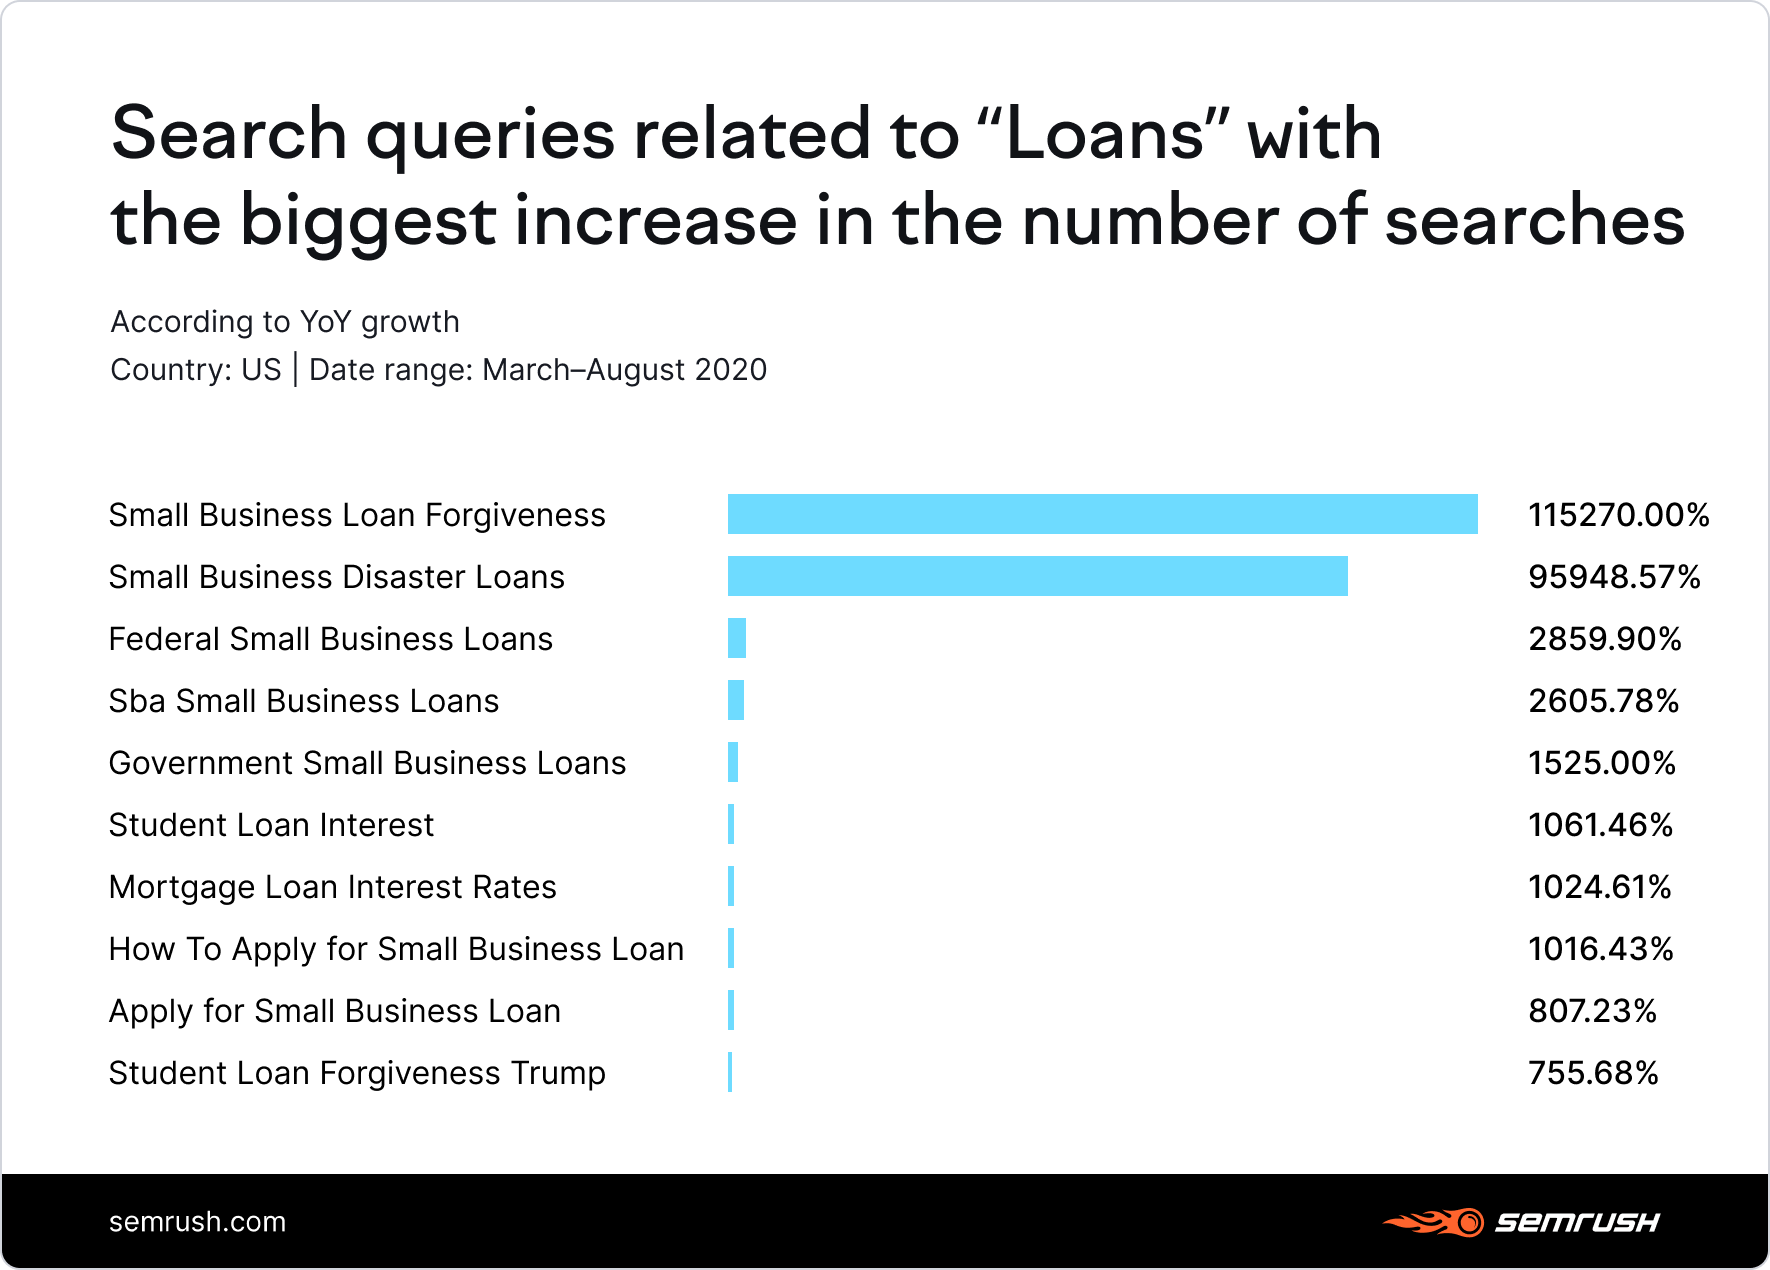 Search queries related to loans with the biggest increase in searches